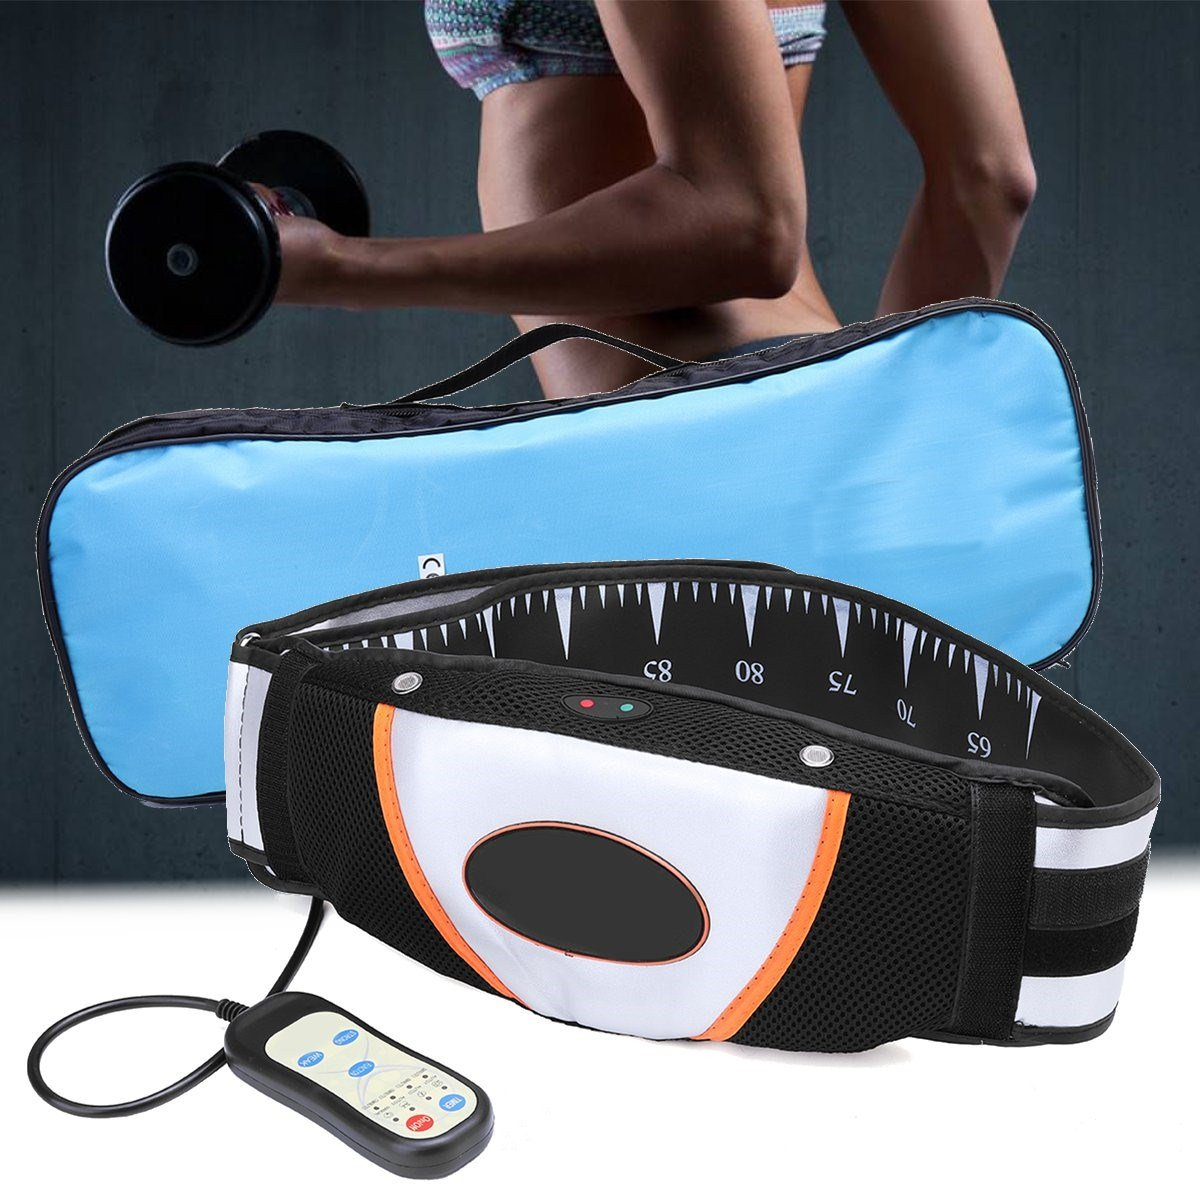 Vibration Heating Slimming Belt Electric Massage Muscle Relax Physical Slimming Therapy Body Shaping